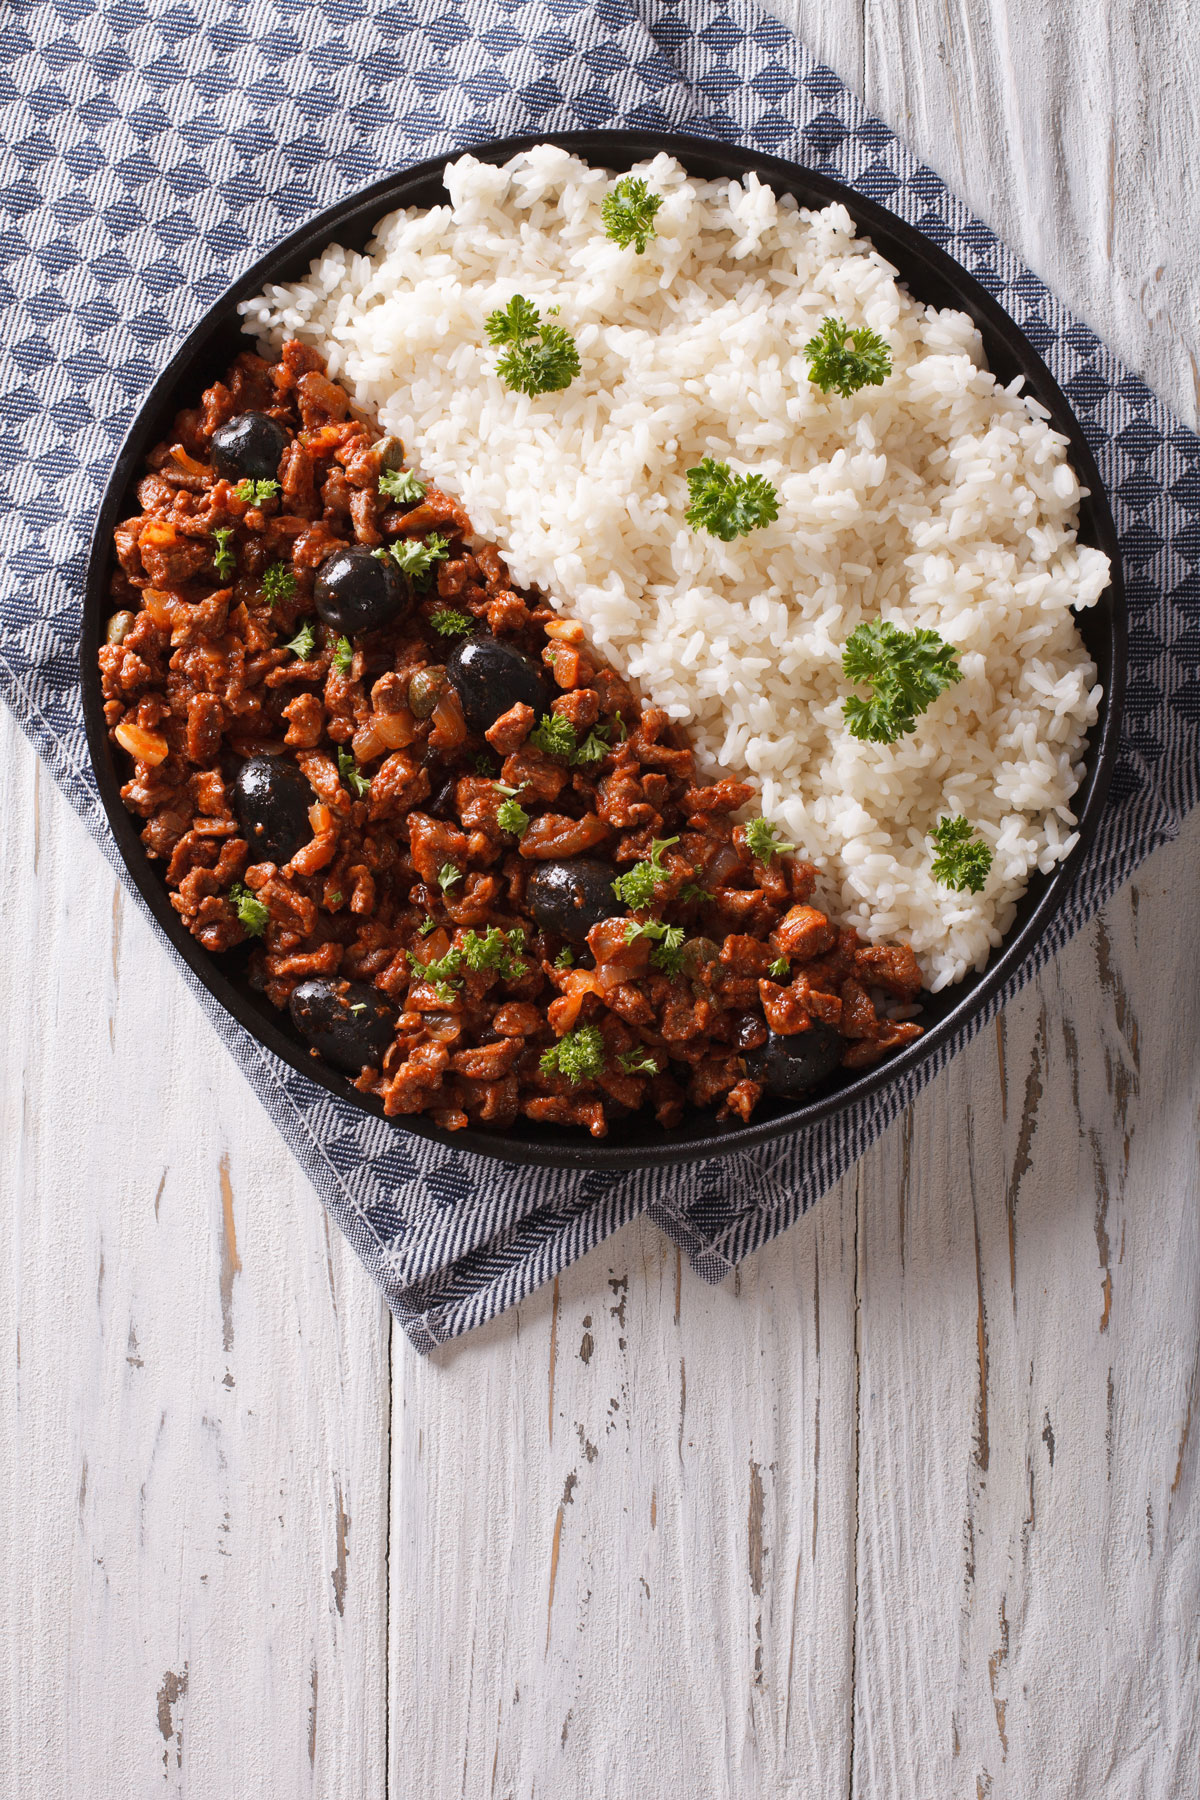 Classic Picadillo a la habanera with rice